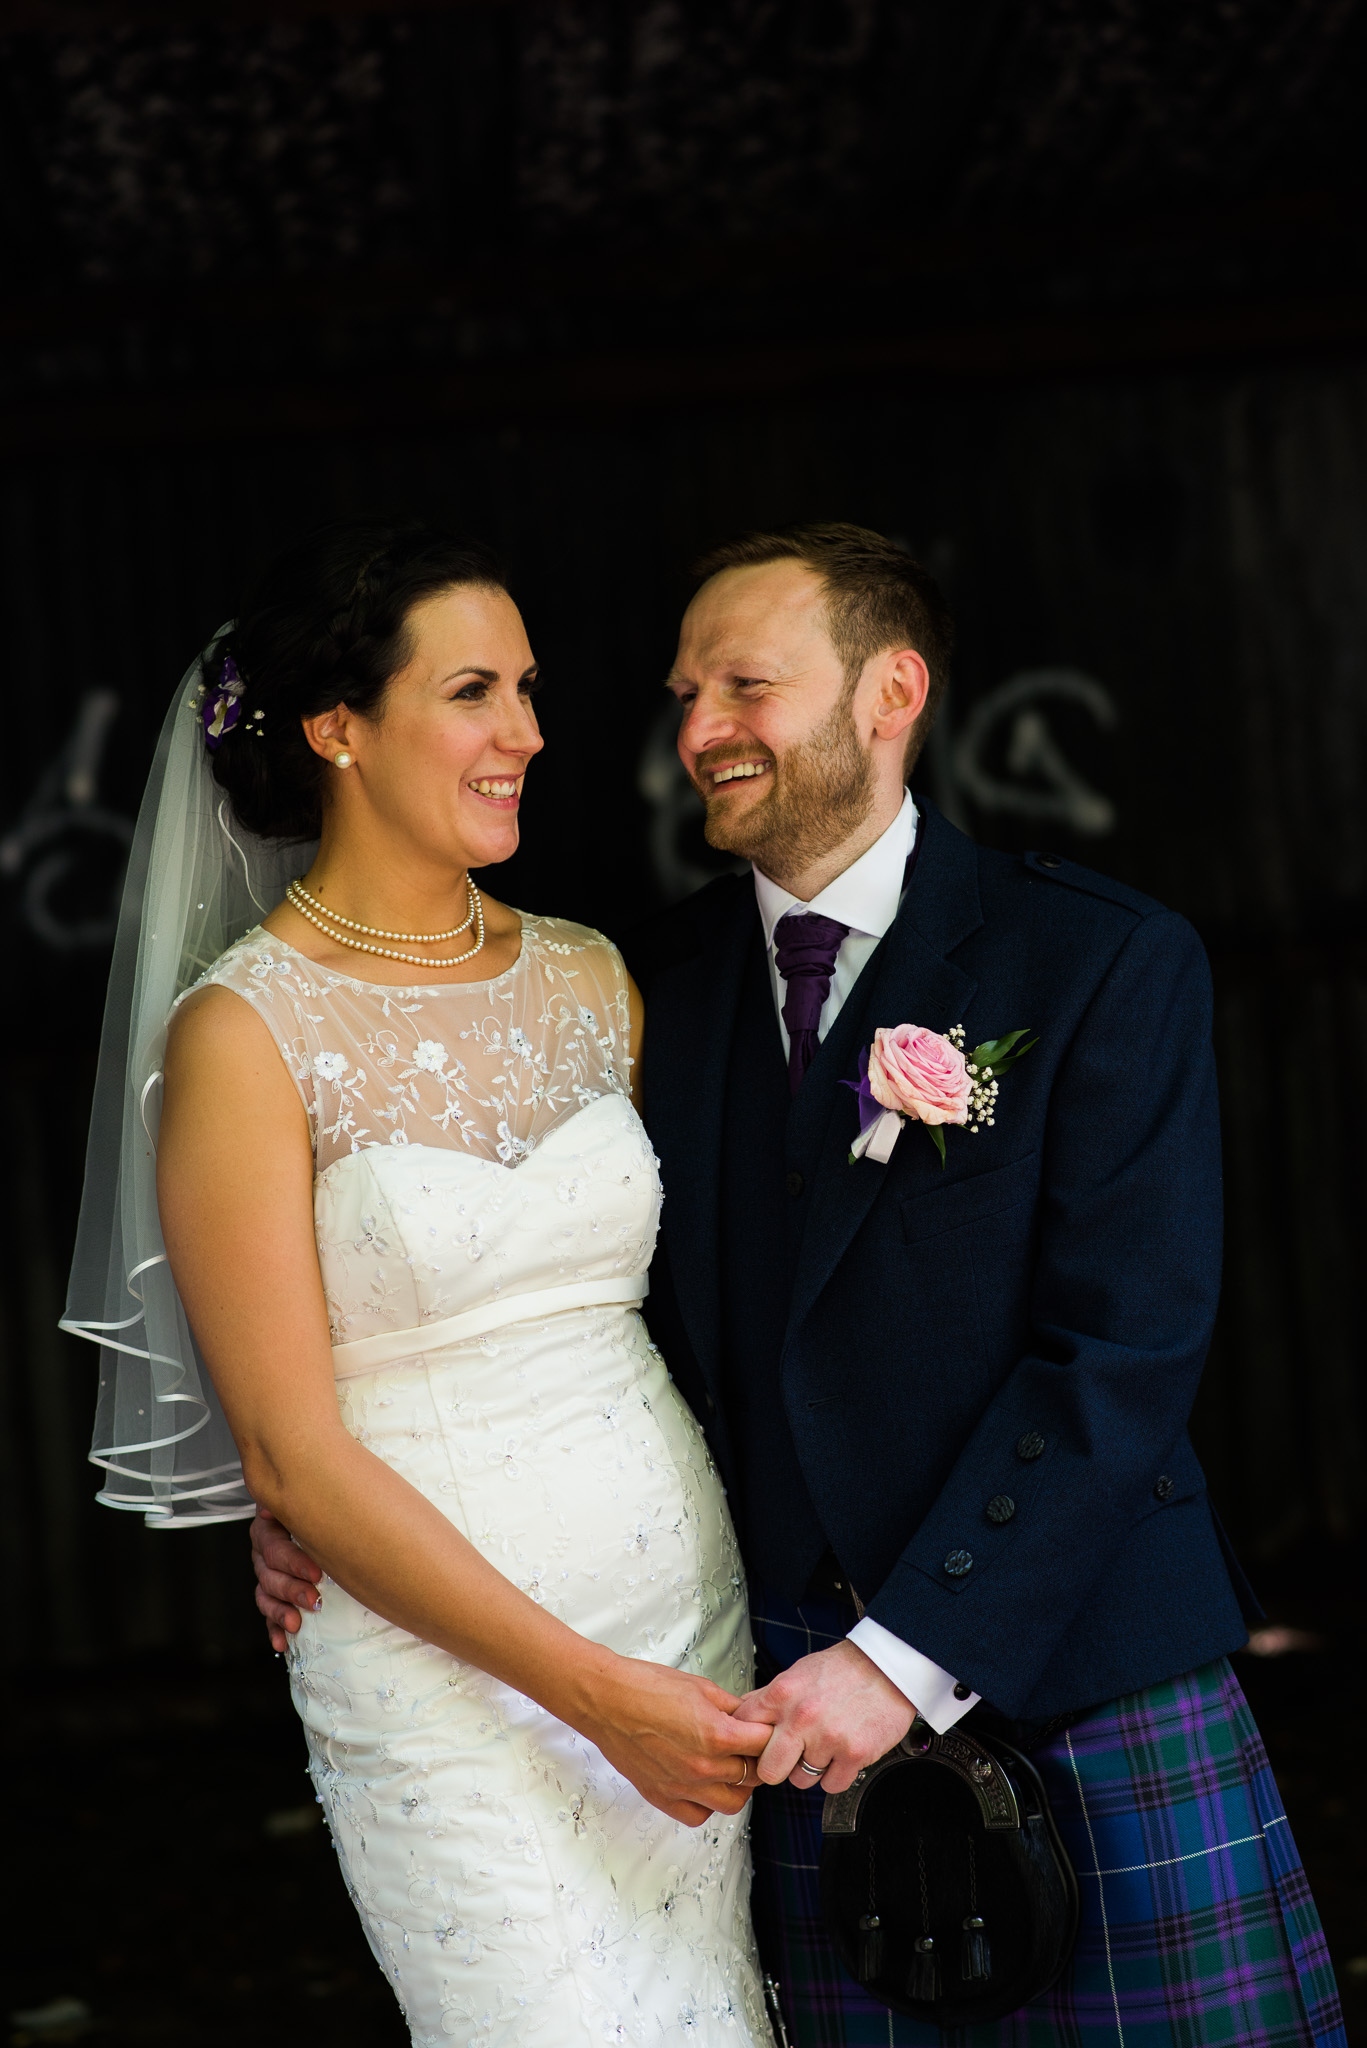 Bride and Groom at Pollokshields Burgh Hall